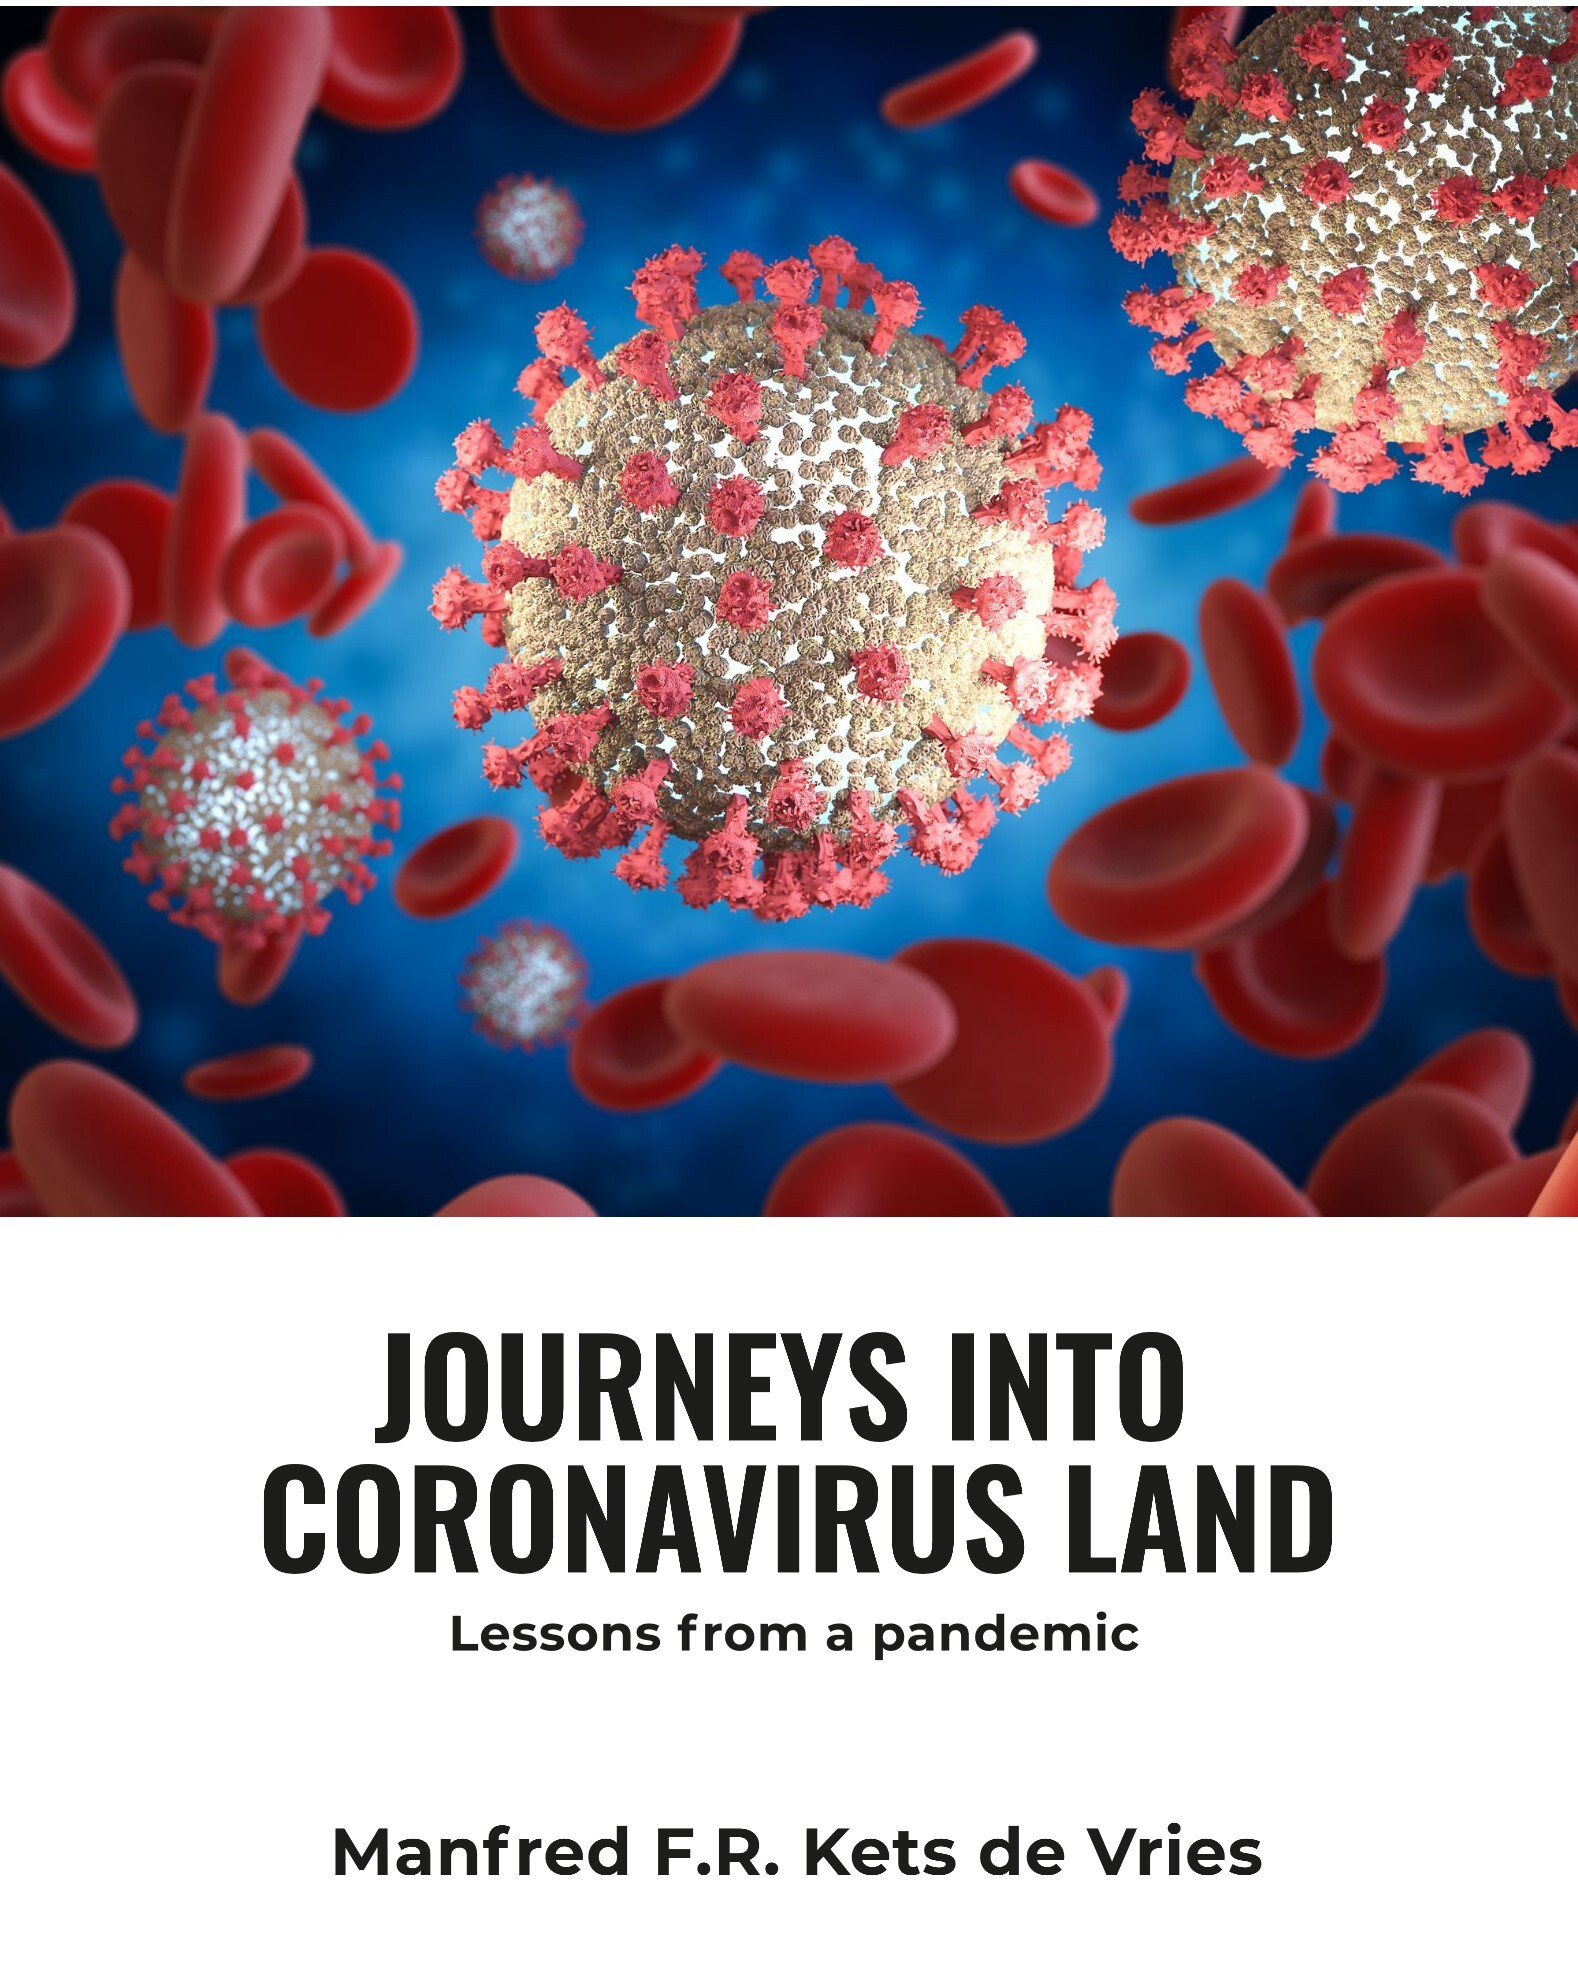 Journeys into Coronavirus Land: Lessons from a pandemic